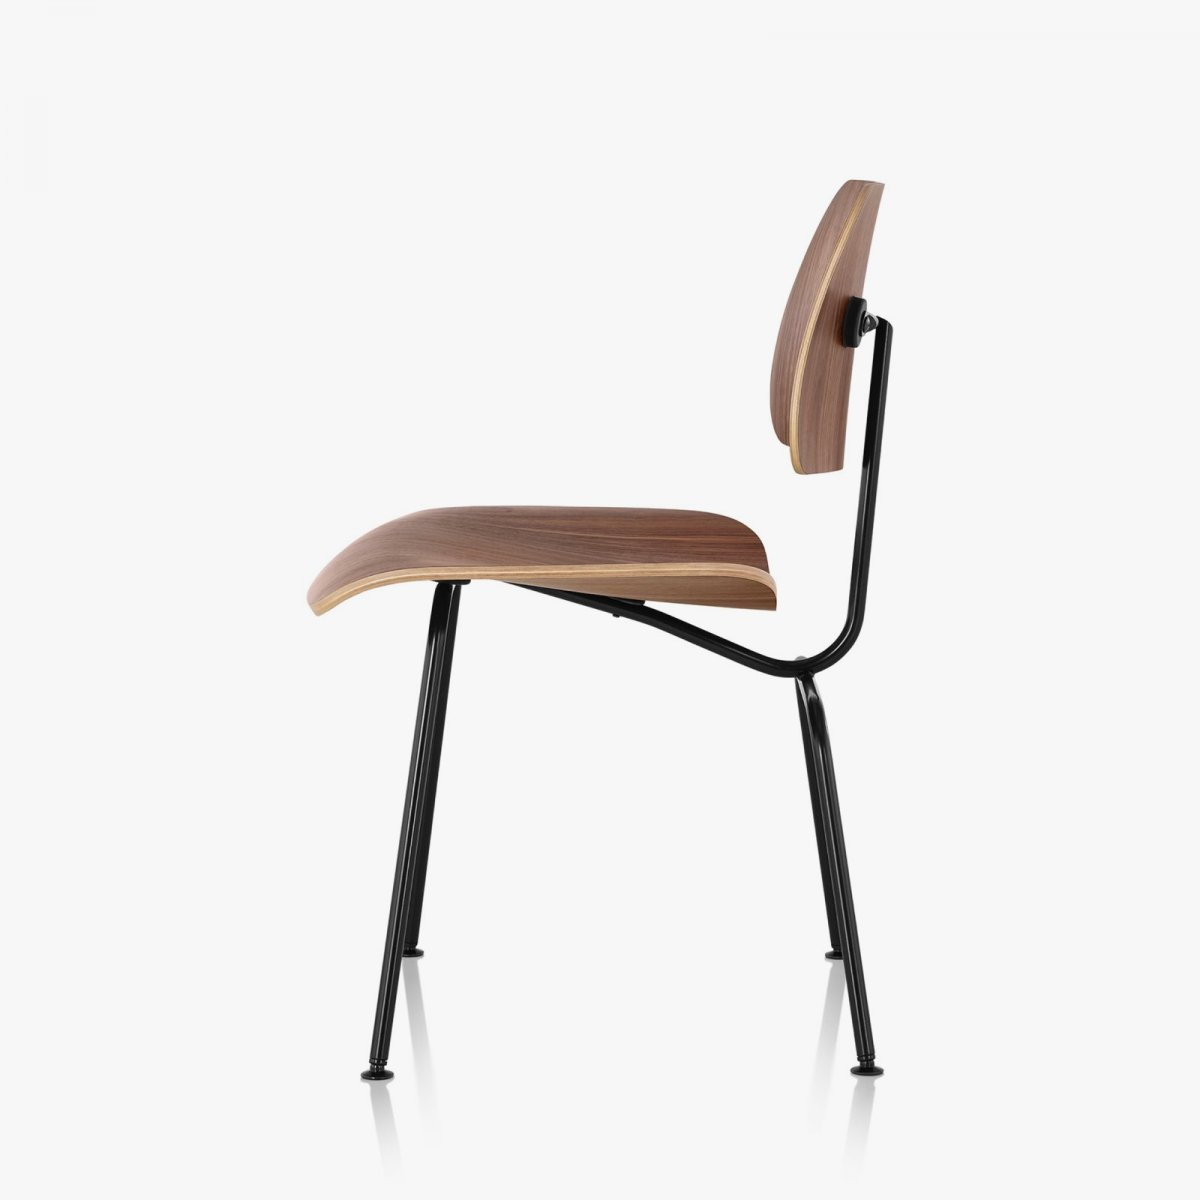 Eames Molded Plywood Dining Chair with Metal Base, walnut seat and back, black base, side view.